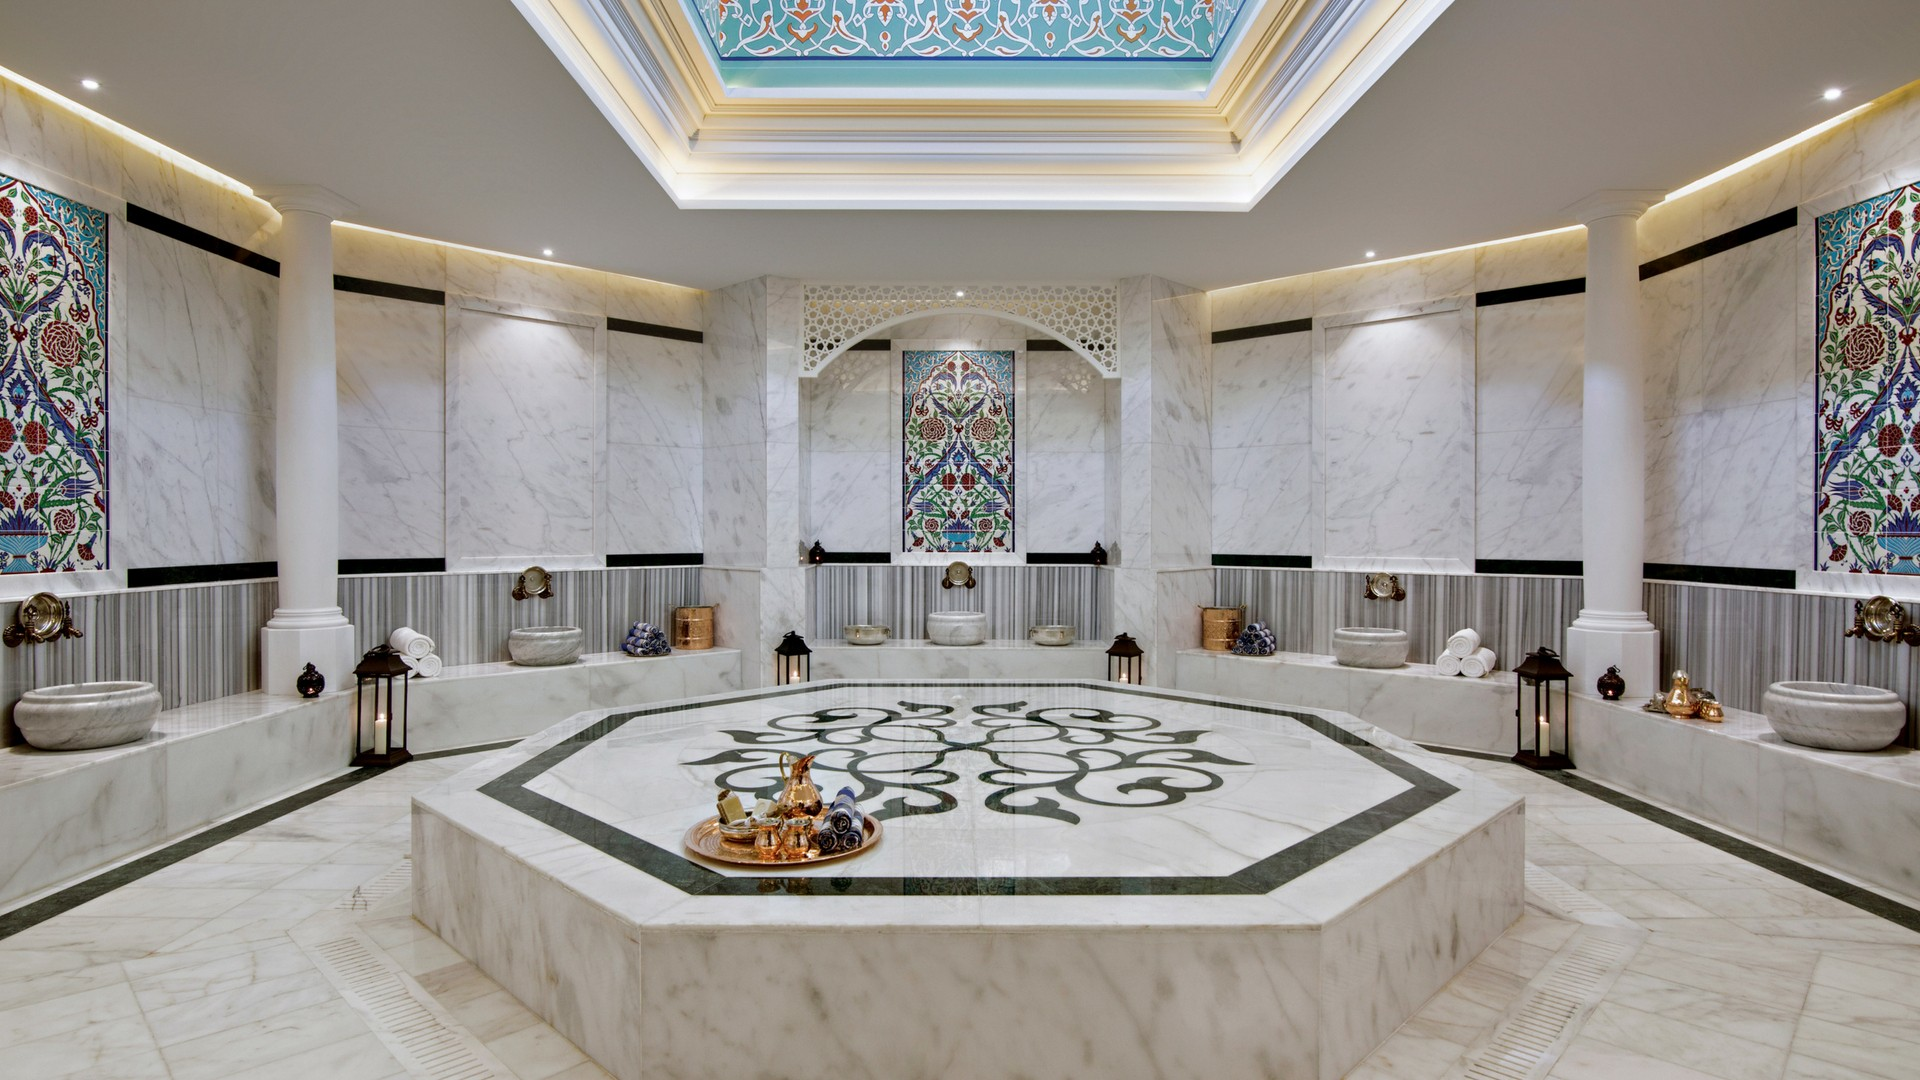 Anantara Vilamoura anantara spa Anantara SPA is one of the most luxurious spas in the world Anantara Vilamoura 4